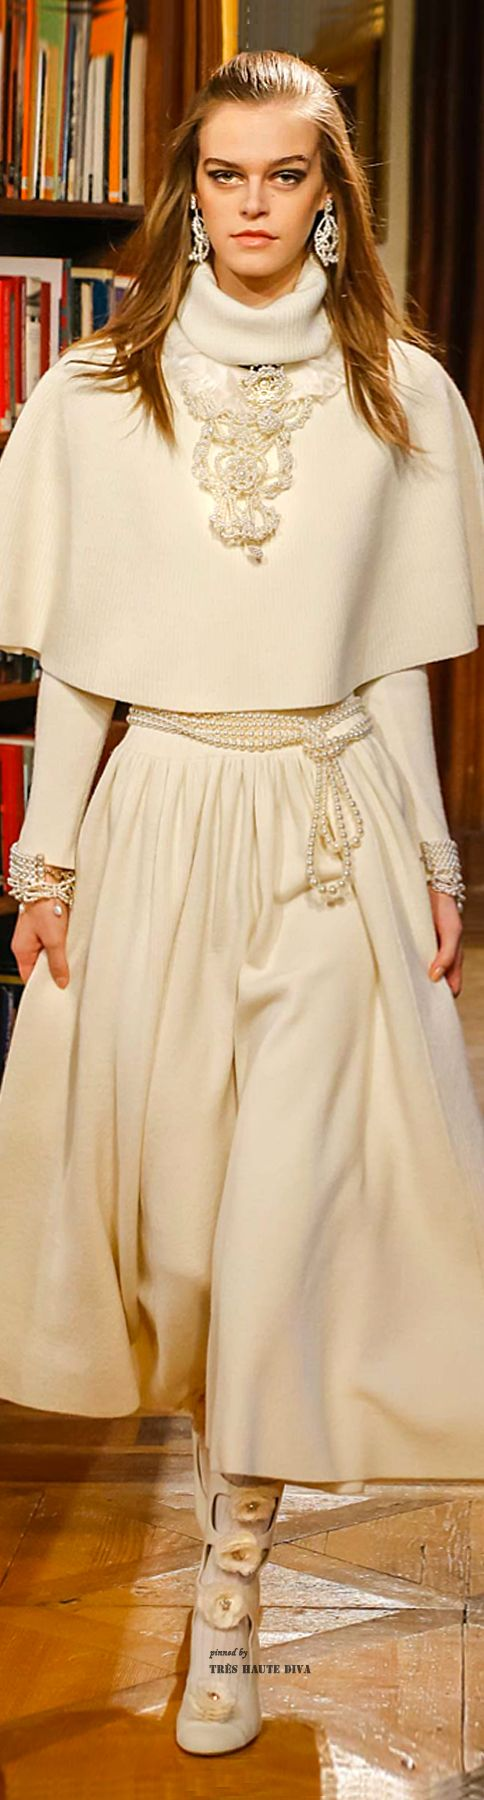 Chanel #Modest doesn't mean frumpy. #DressingWithDignity www.ColleenHammond.com www.TotalimageInstitute.com